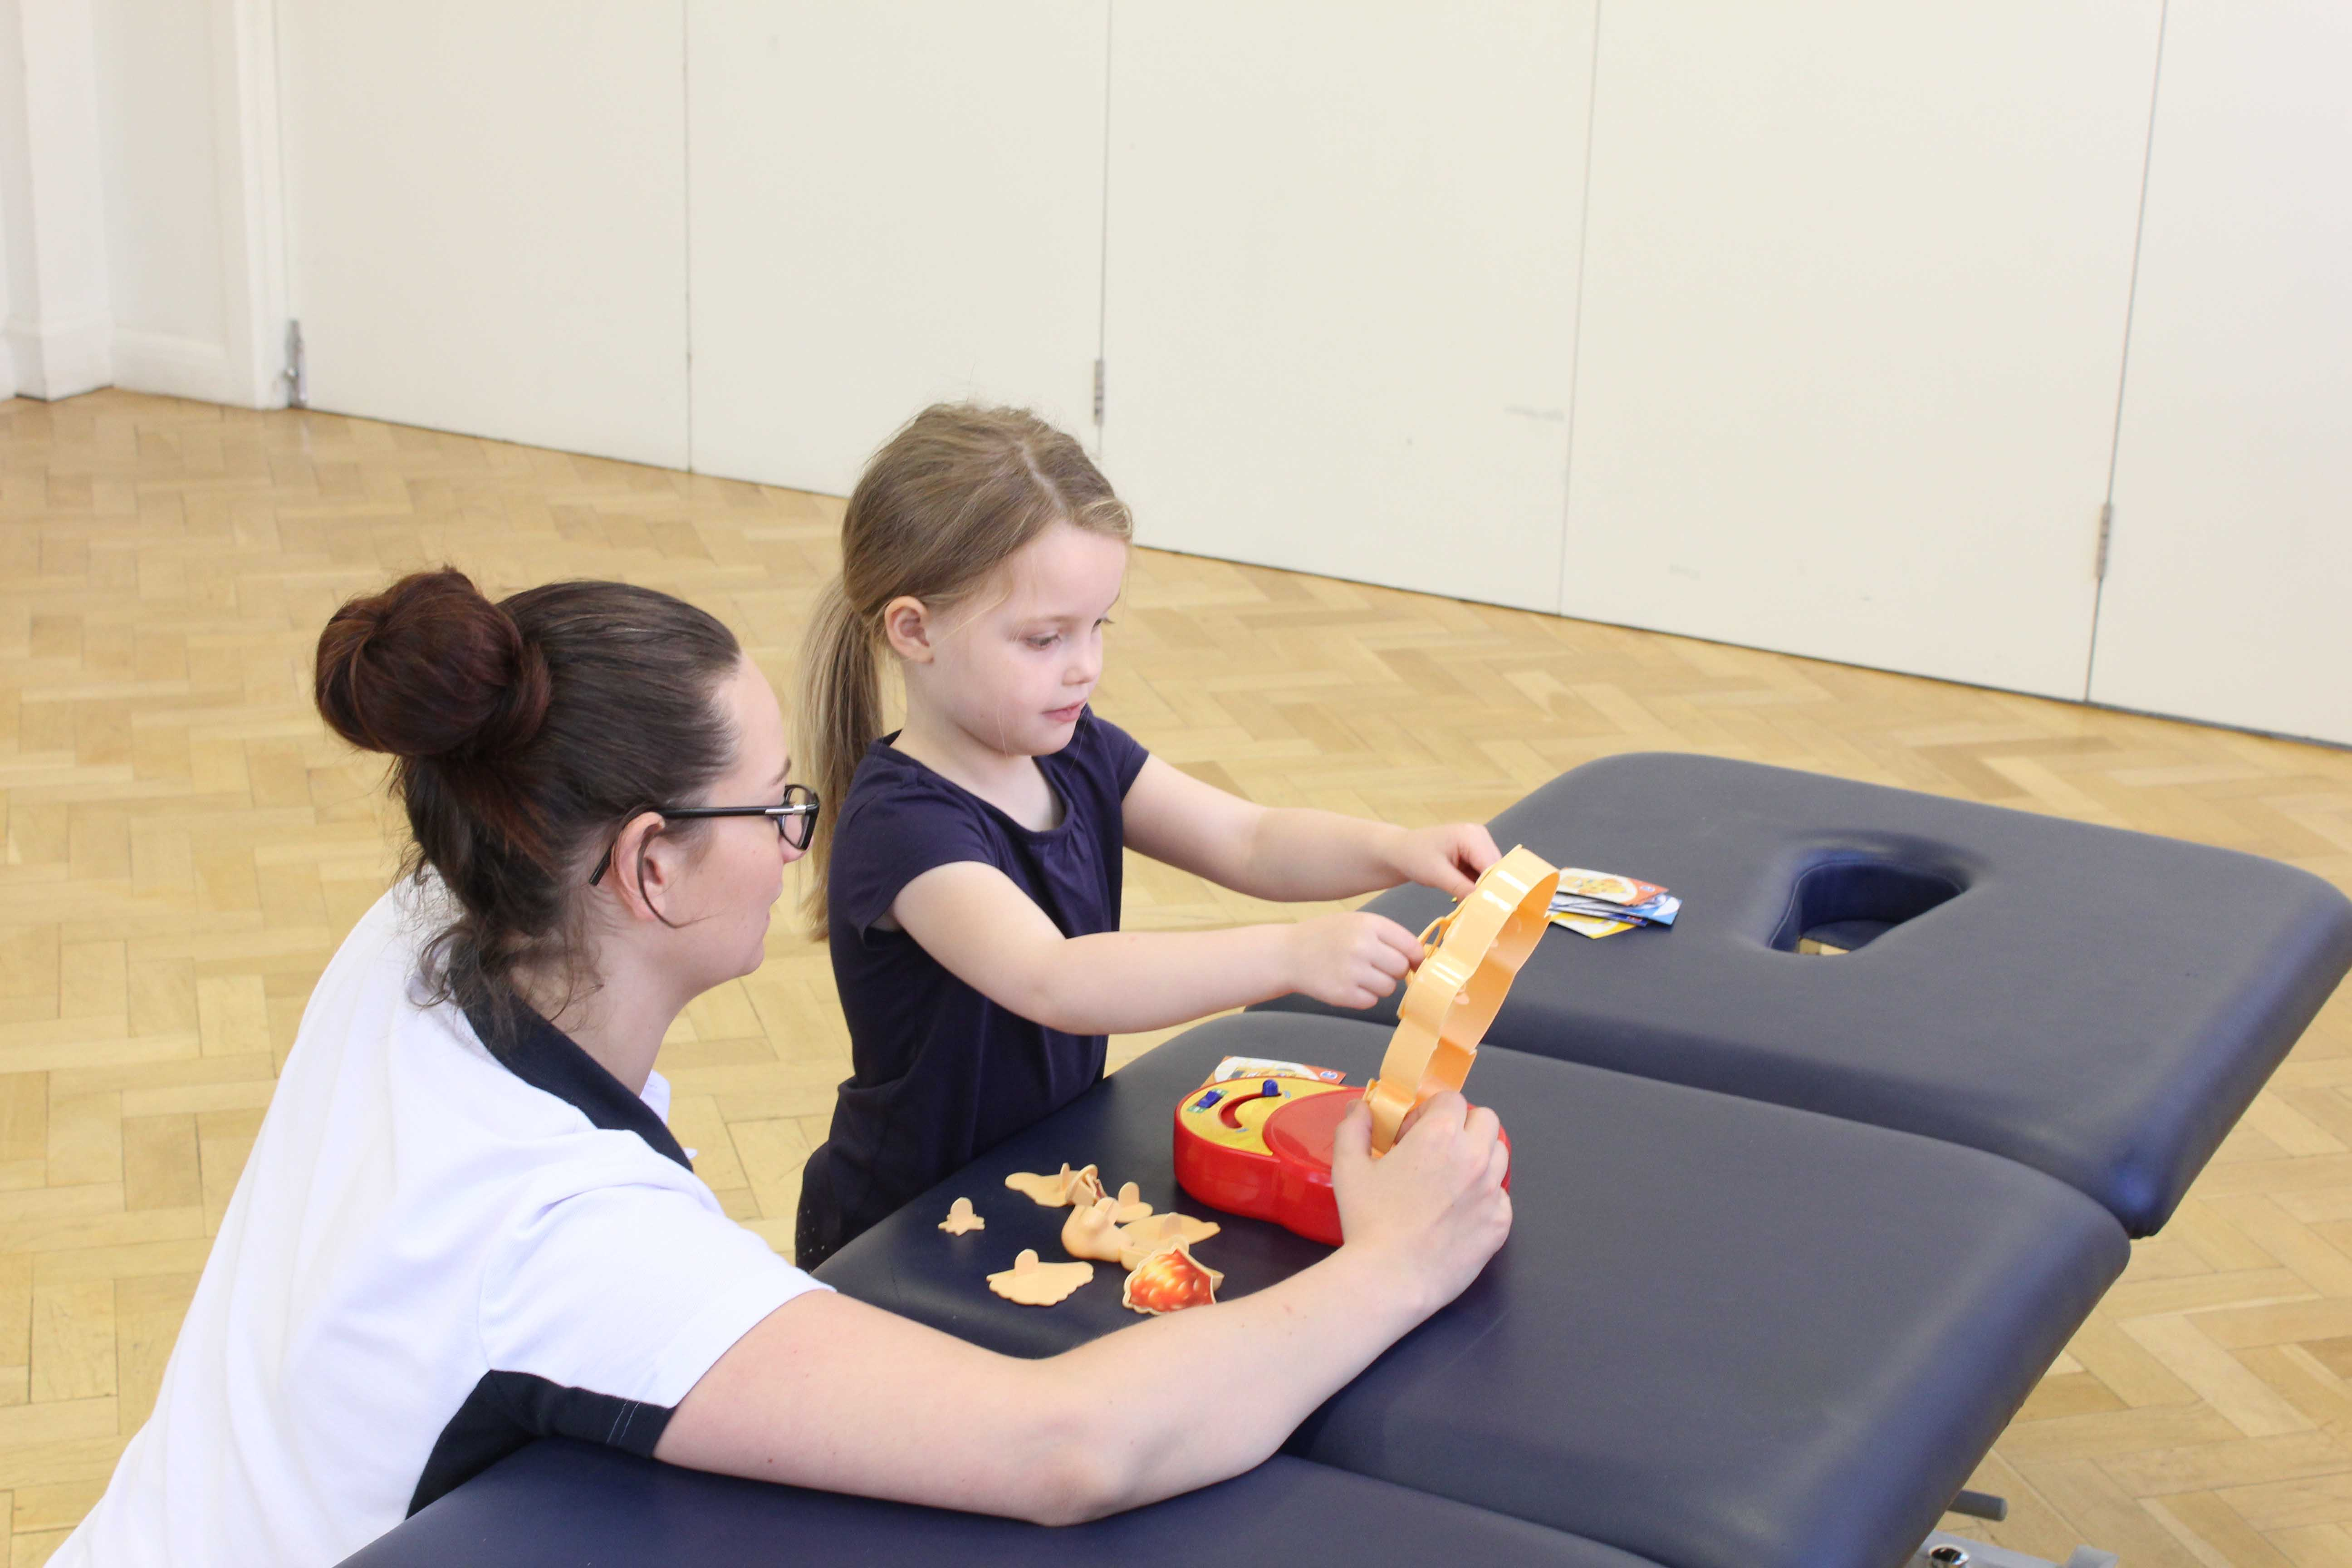 Fine motor skills and co-ordination exercises supervised by a paediatric physiotherapist